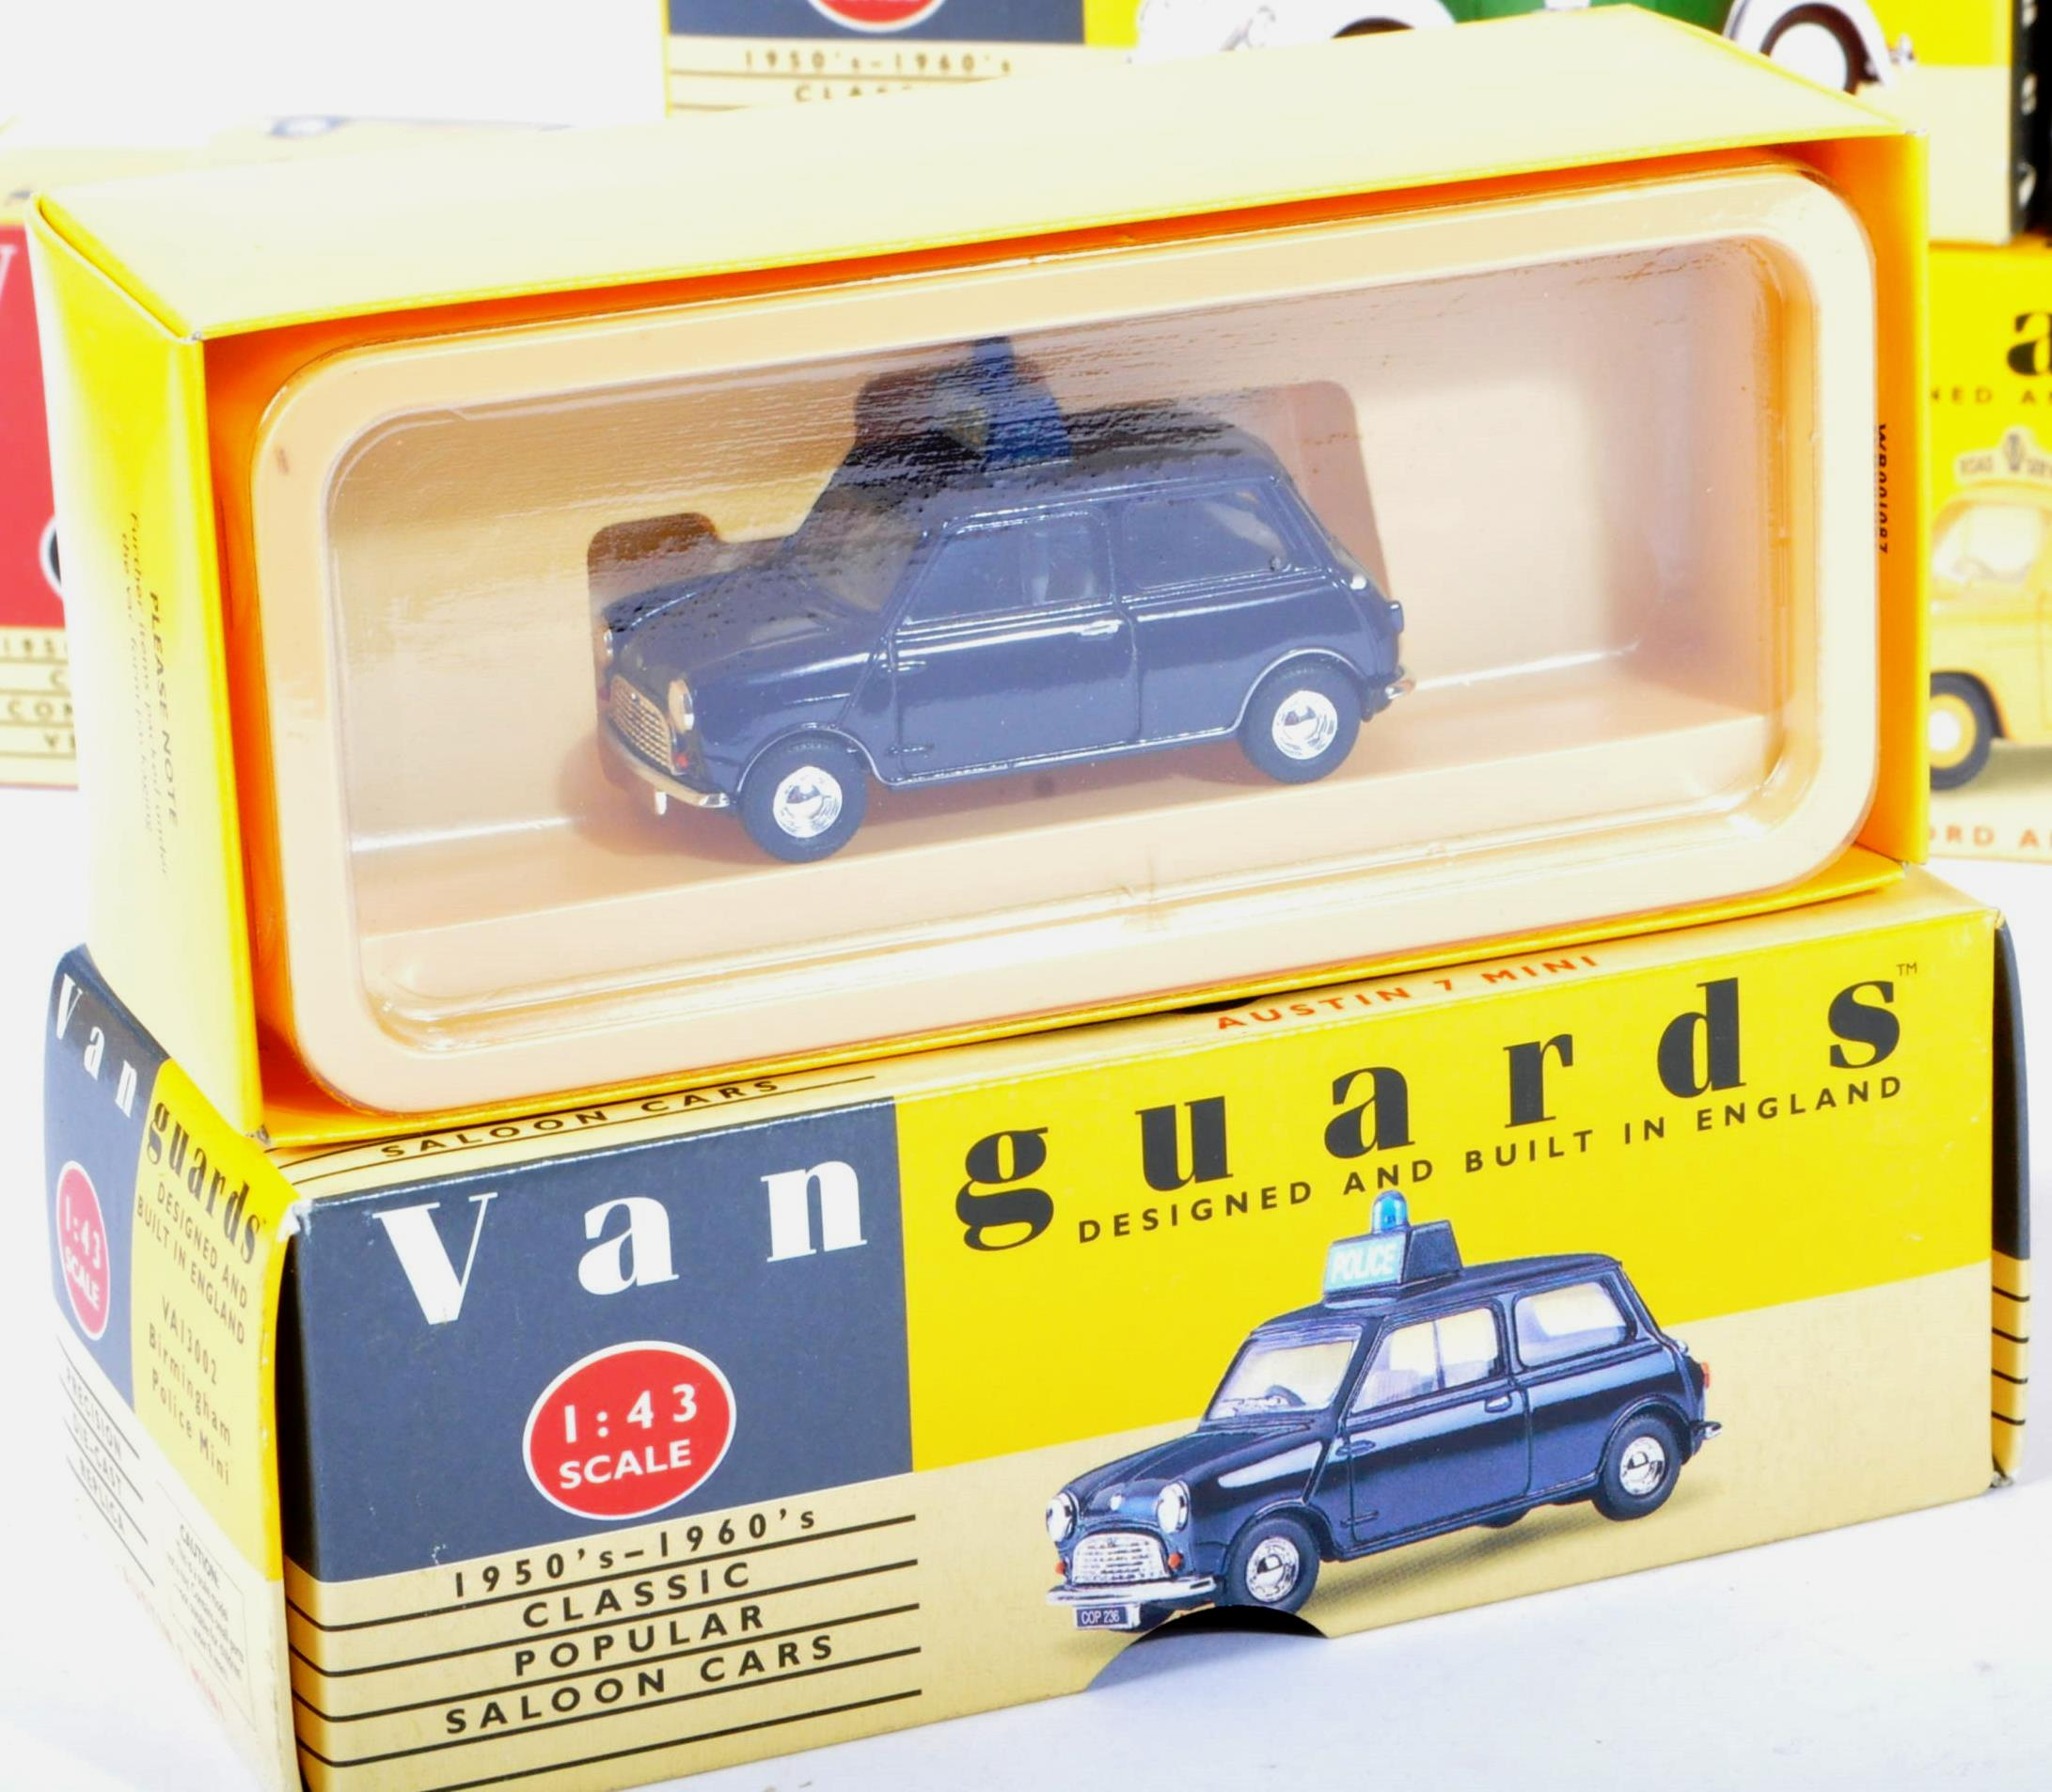 COLLECTION OF X10 LLEDO VANGUARDS DIECAST MODELS - Image 3 of 5